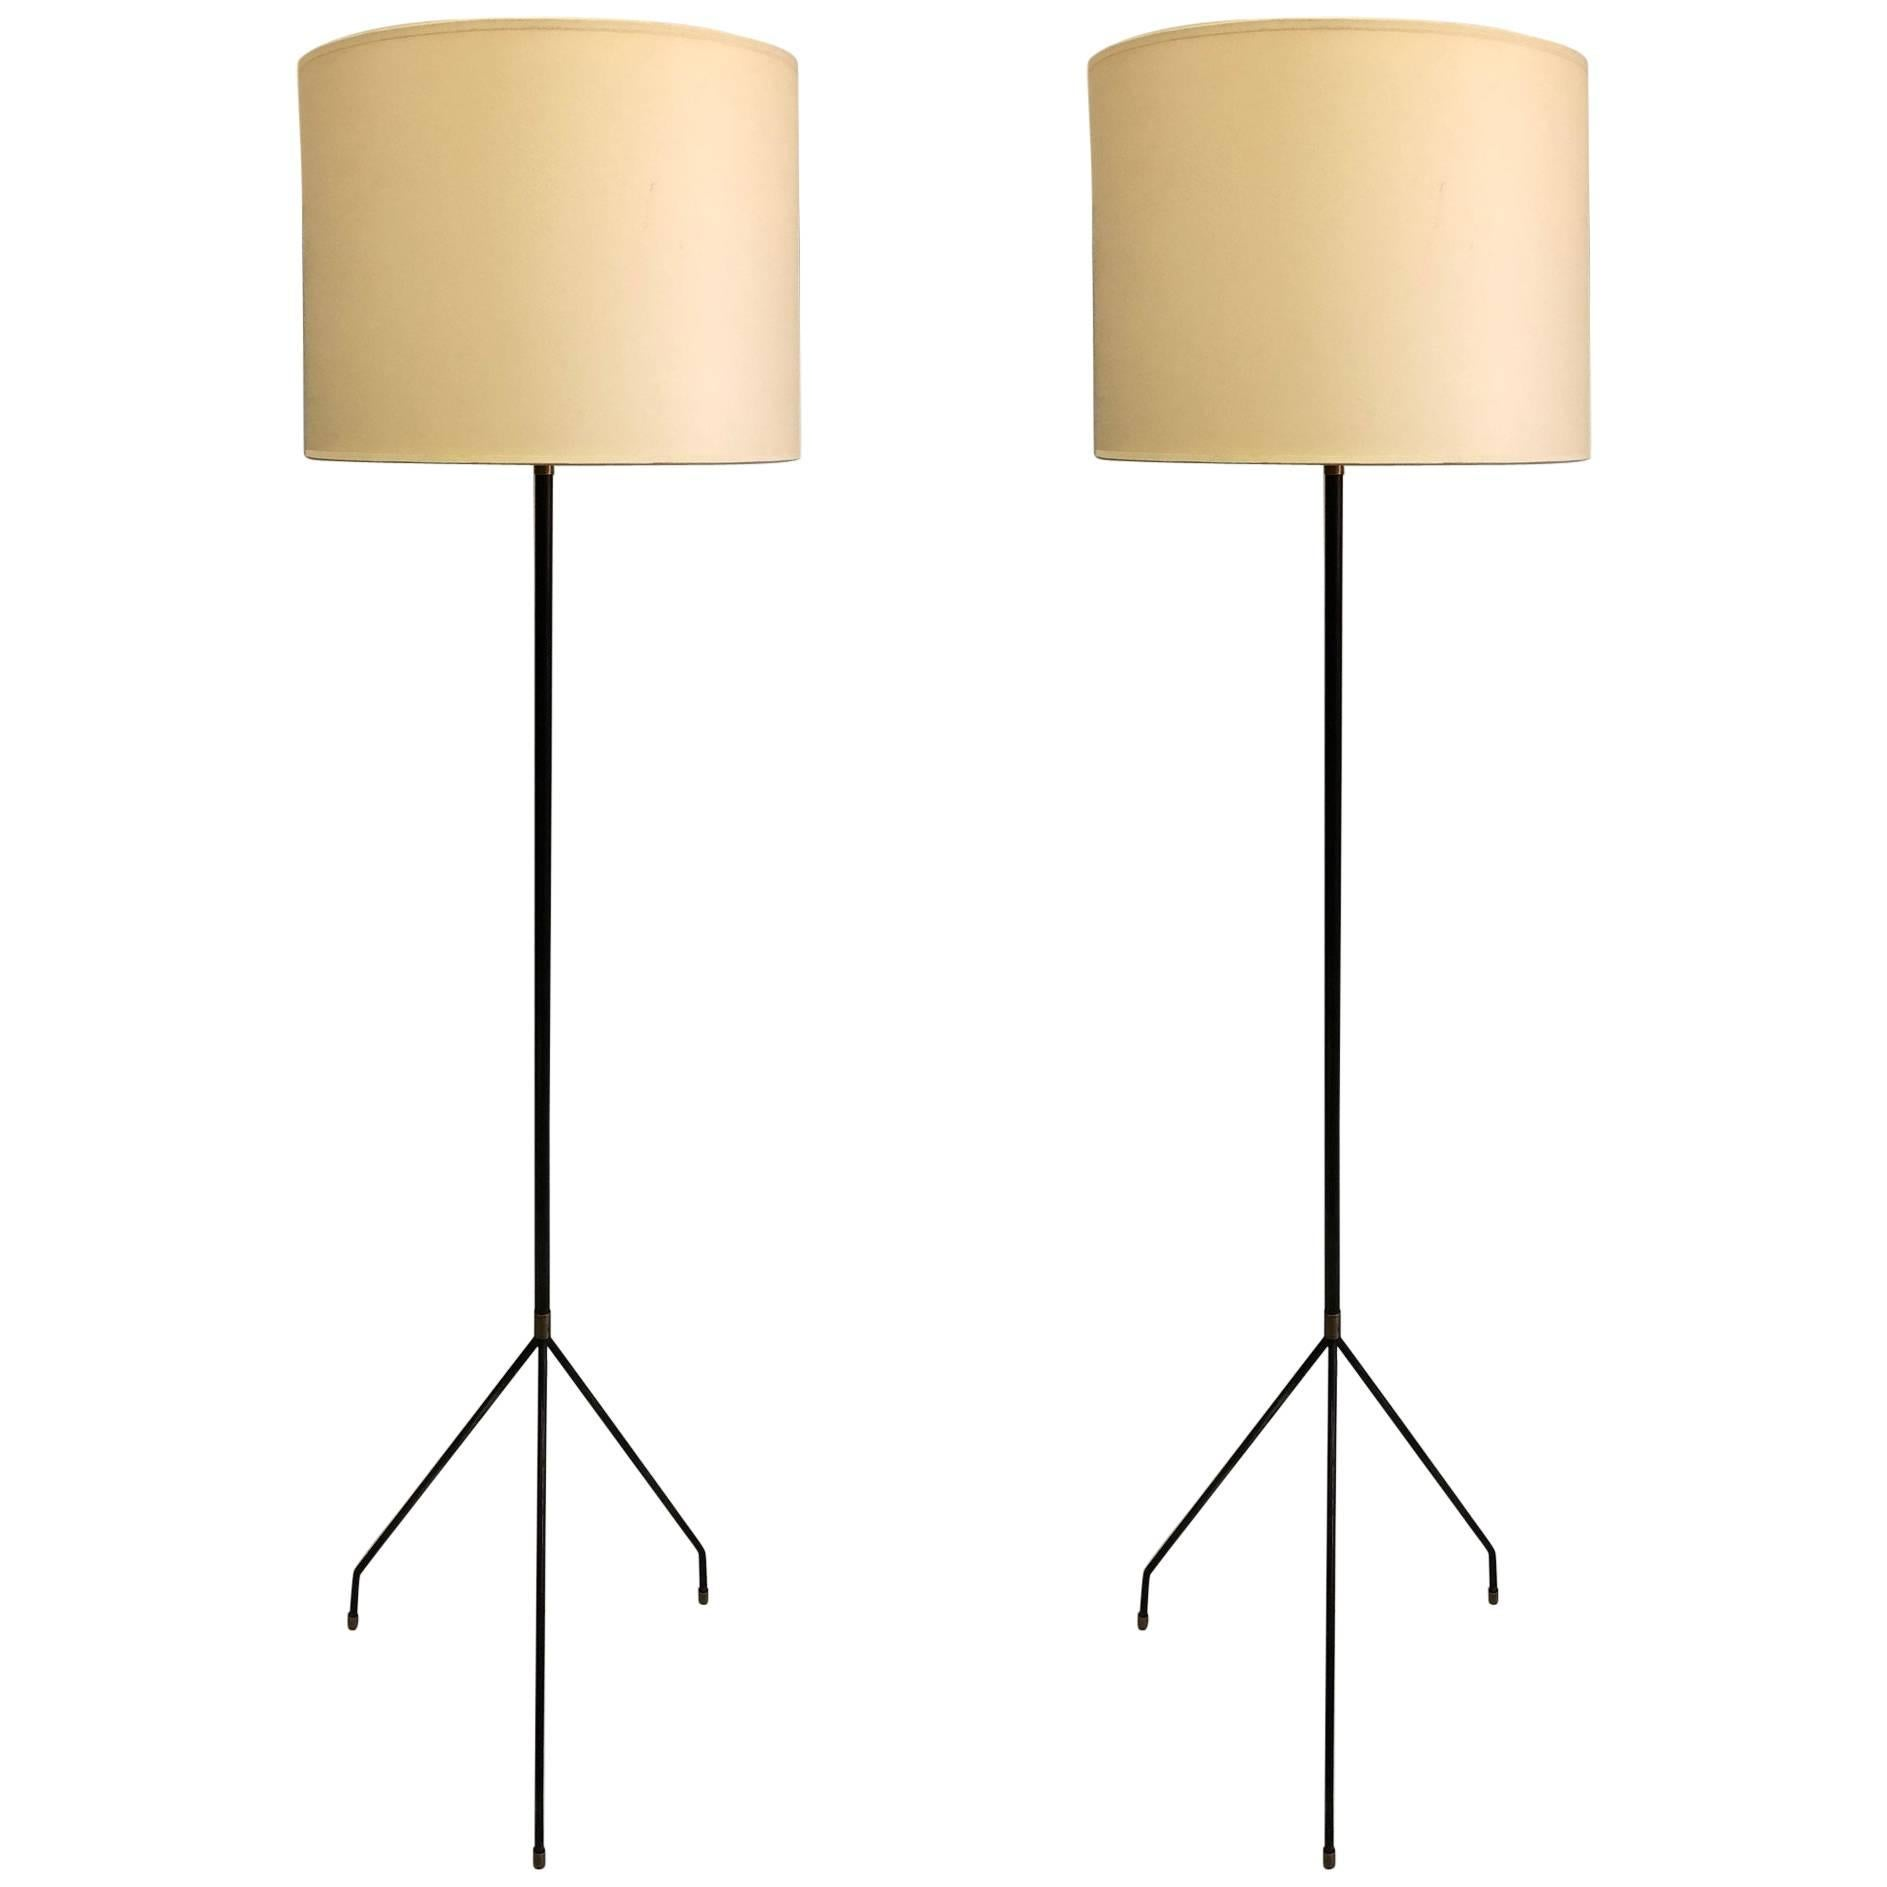 pair of french midcentury modern floor lamps attributed to pierre guariche